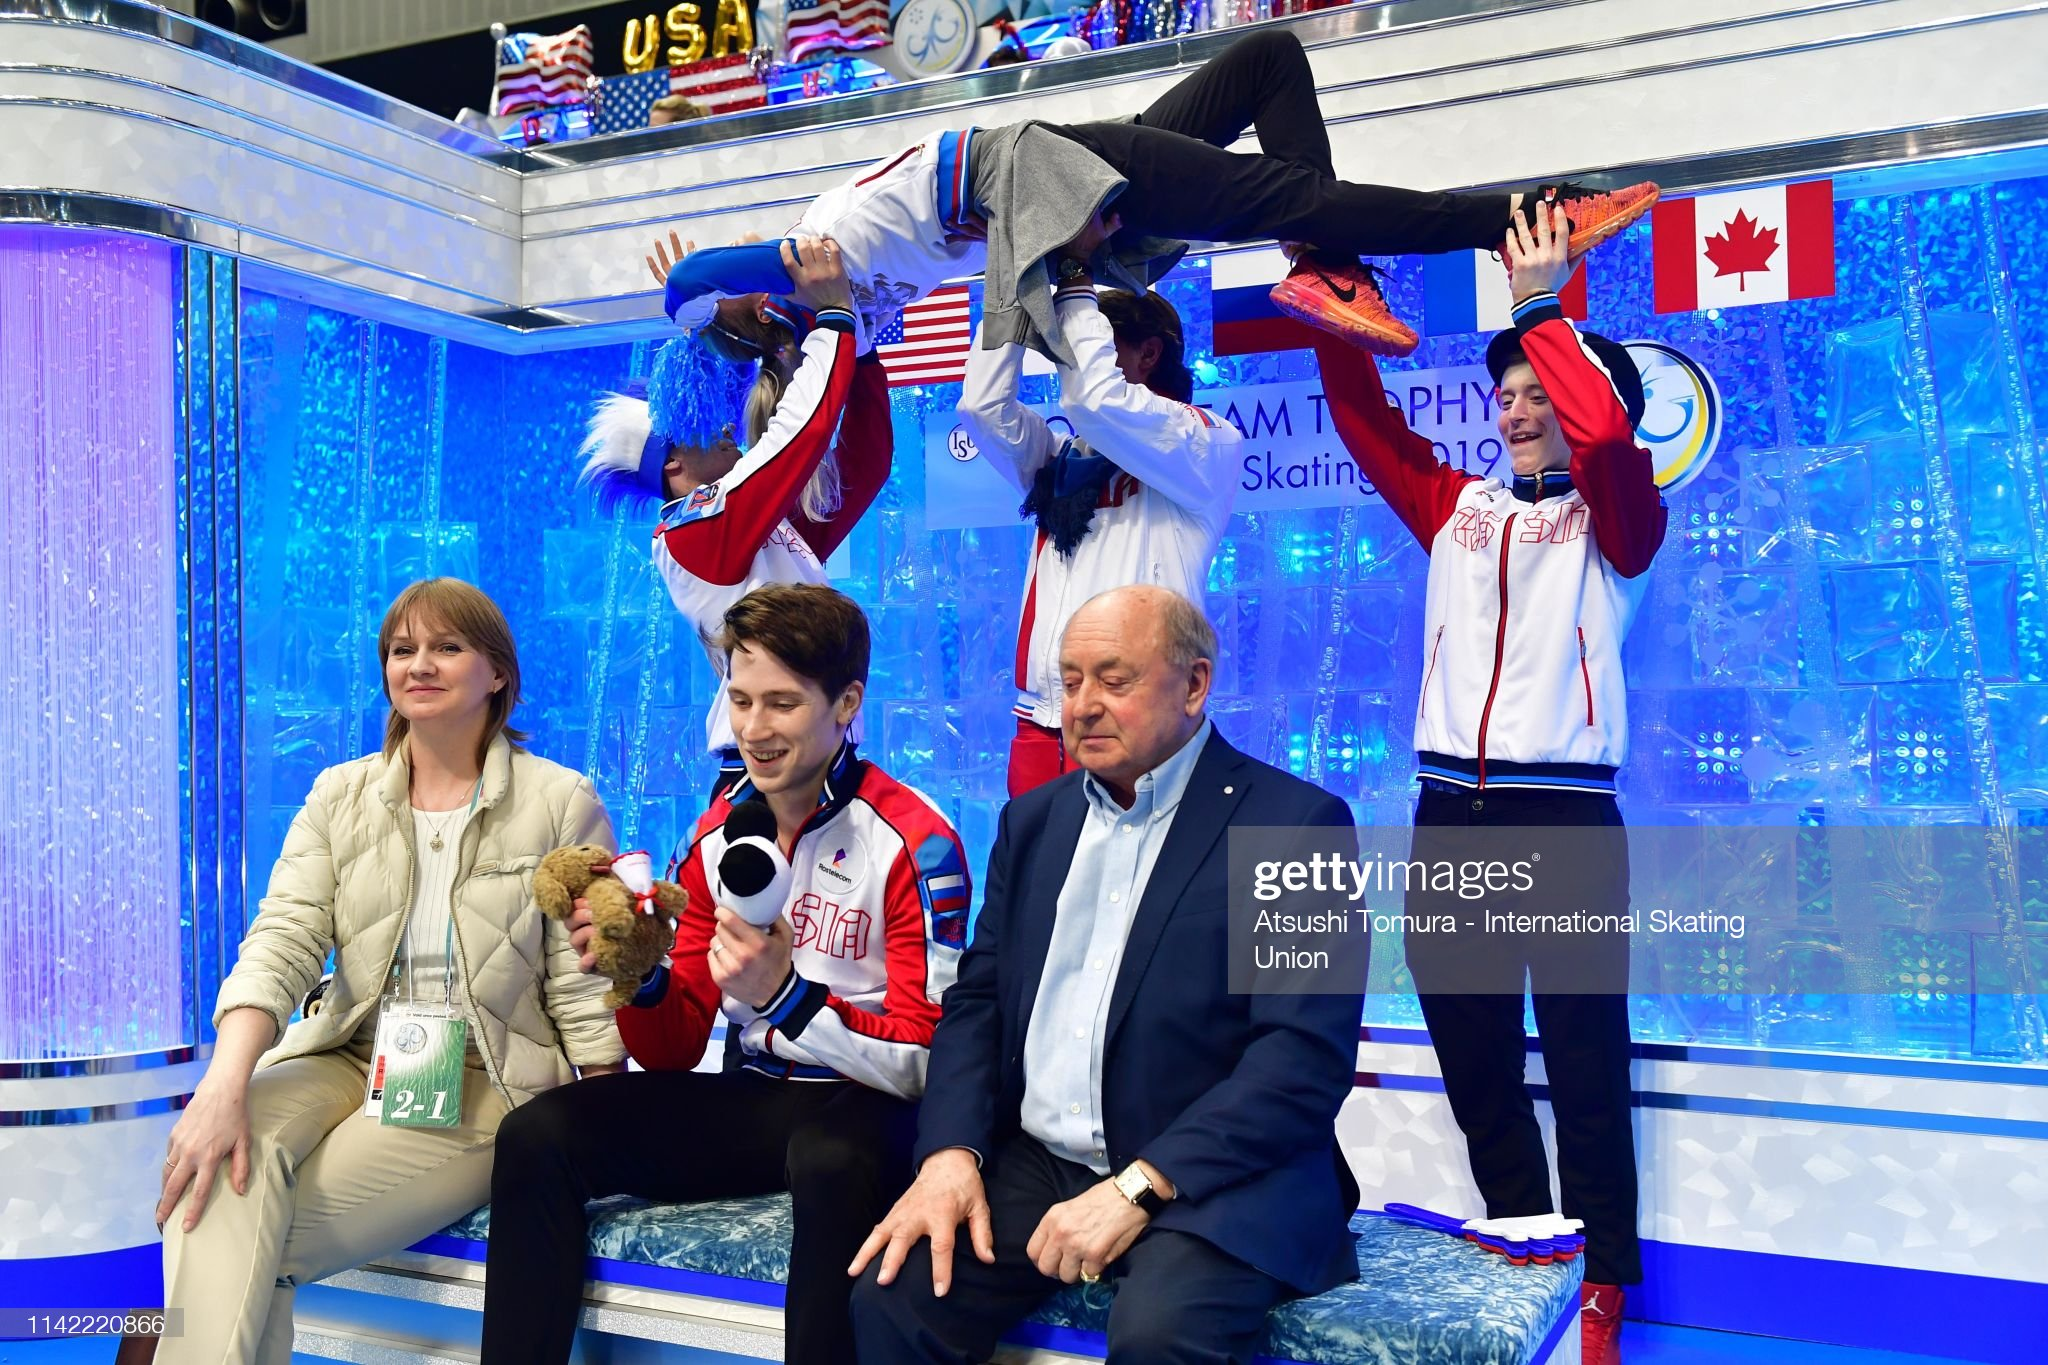 https://media.gettyimages.com/photos/andreilazukin-of-russia-waits-for-his-score-at-the-kiss-and-cry-with-picture-id1142220866?s=2048x2048